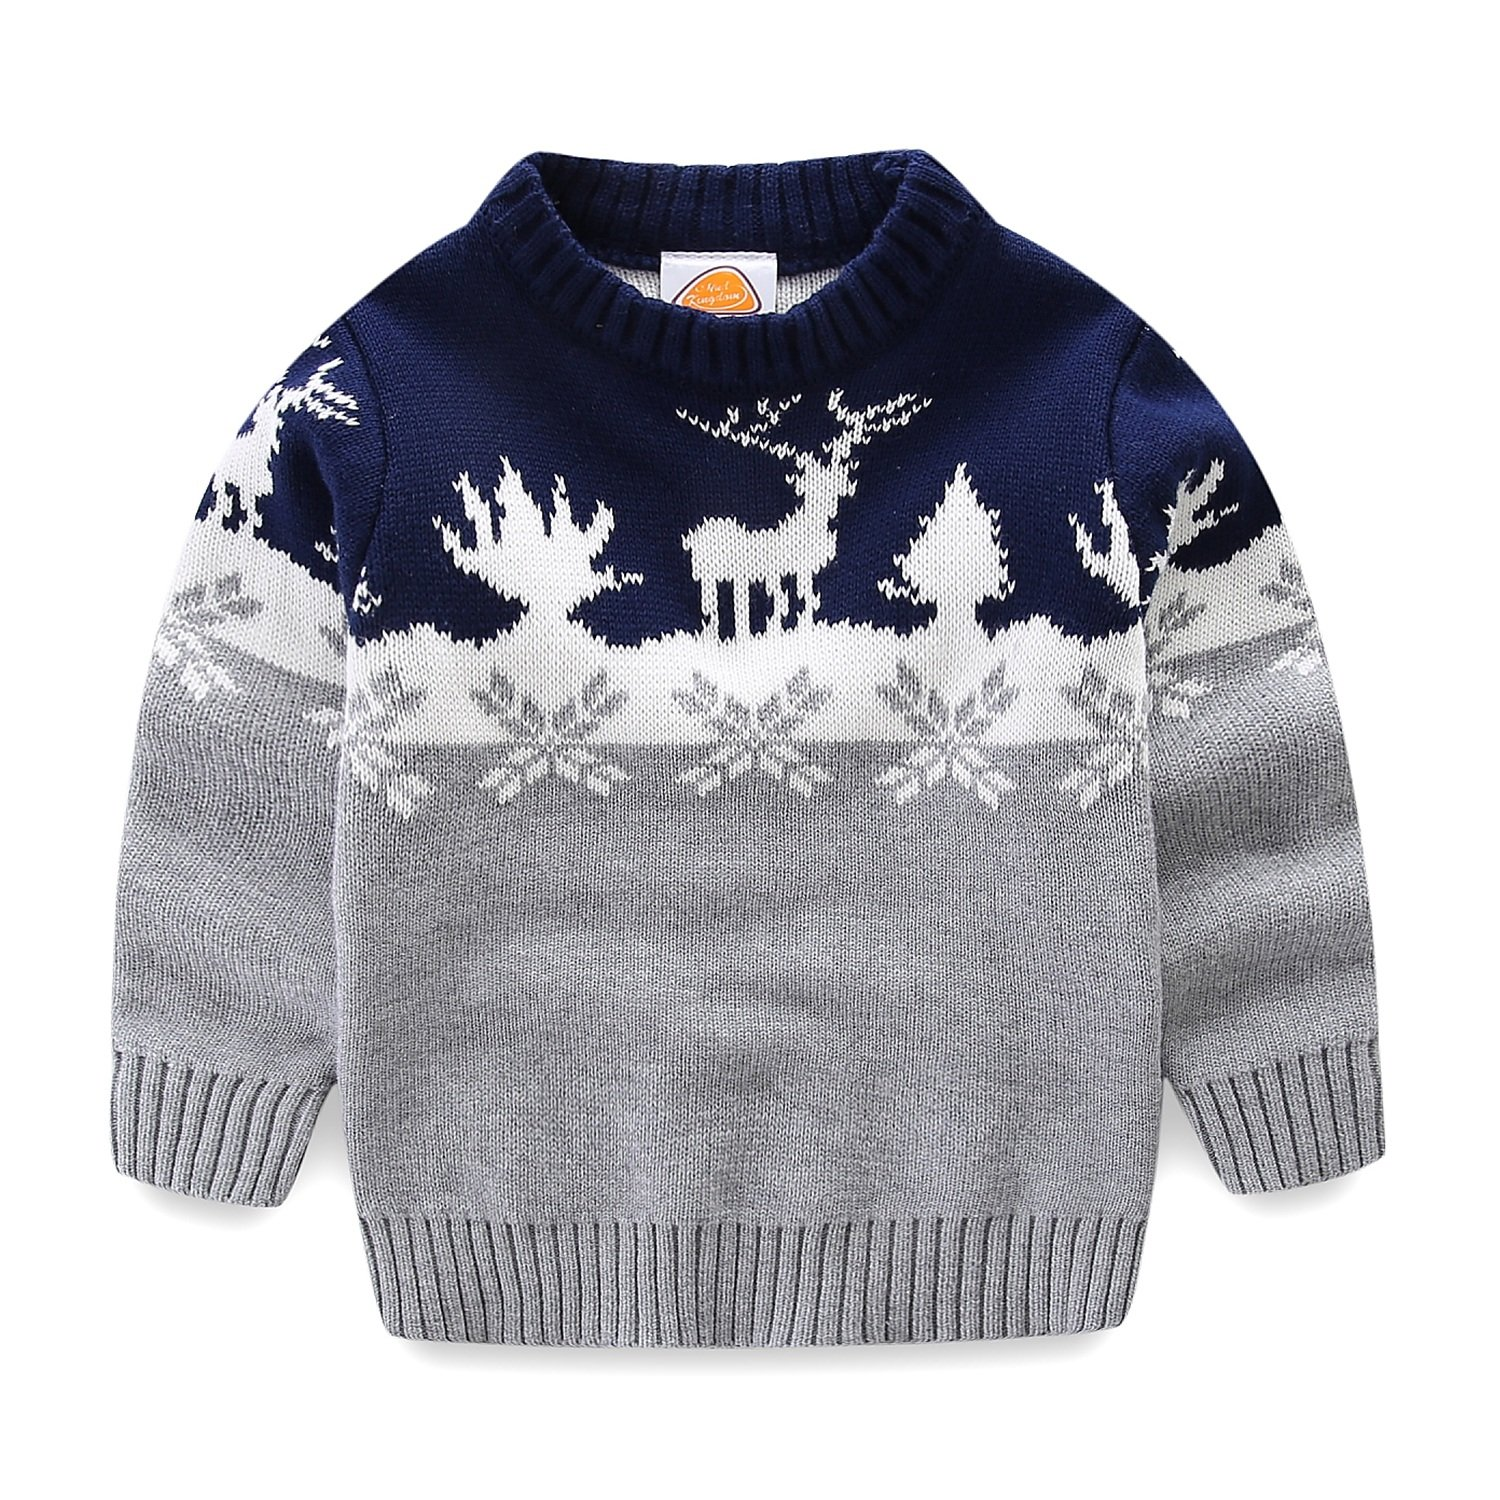 Mud Kingdom Little Boys Christmas Sweaters Xmas Deer Clothes 6 Gray